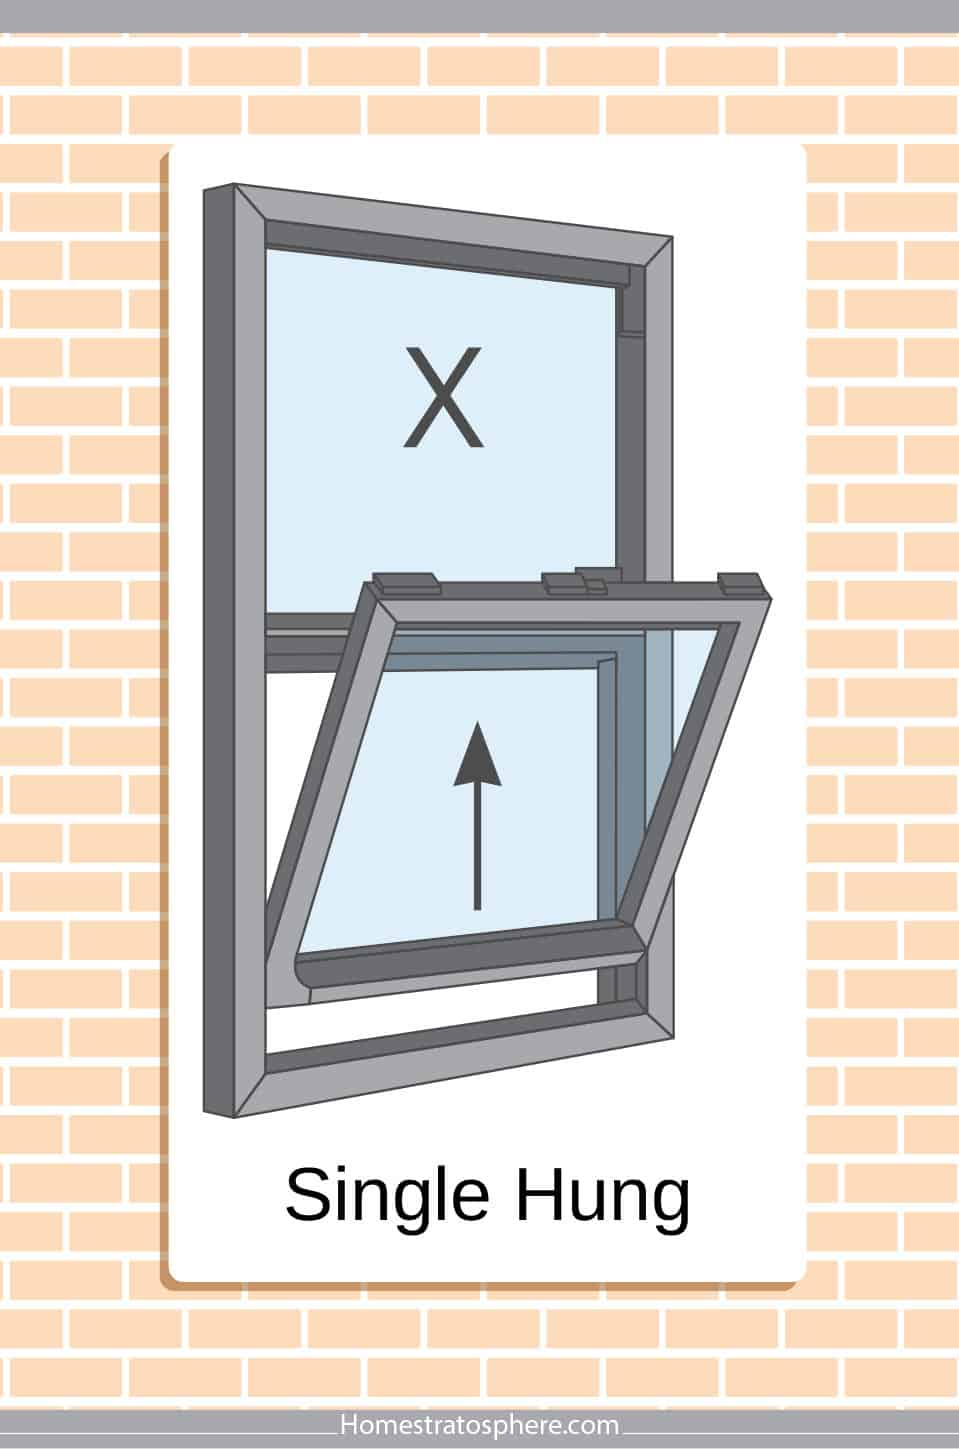 Single hung window style